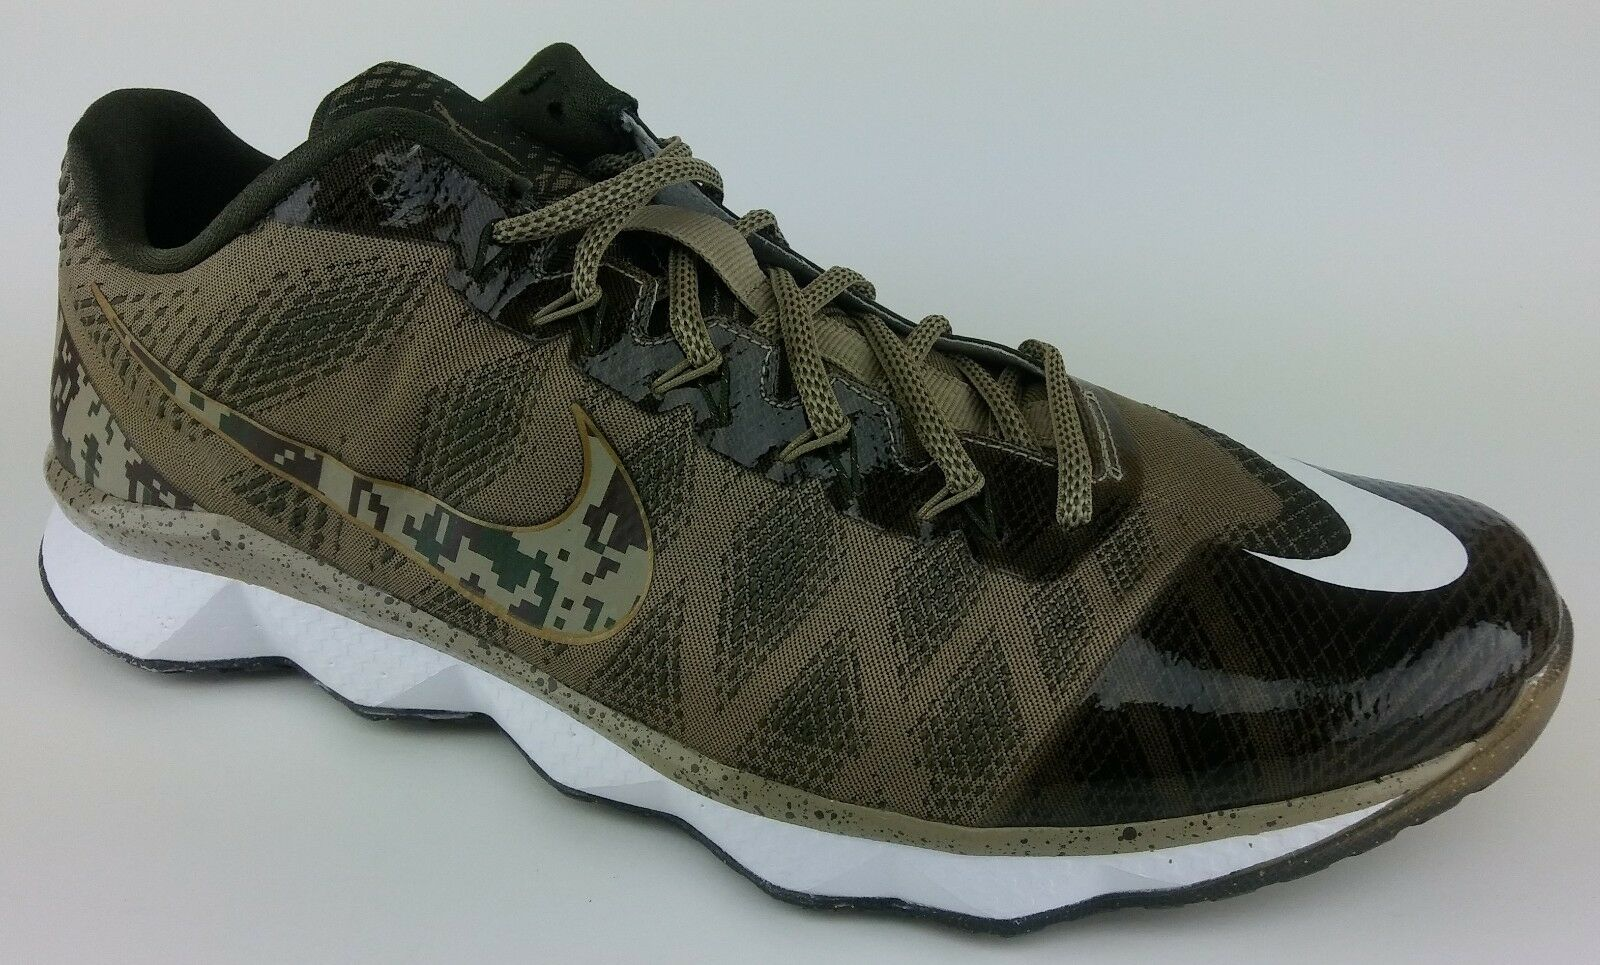 NIKE NIKE NIKE - CJ3 FLYWEAVE TRAINER SNEAKER -  Men Size 12 -  Brown 857f96